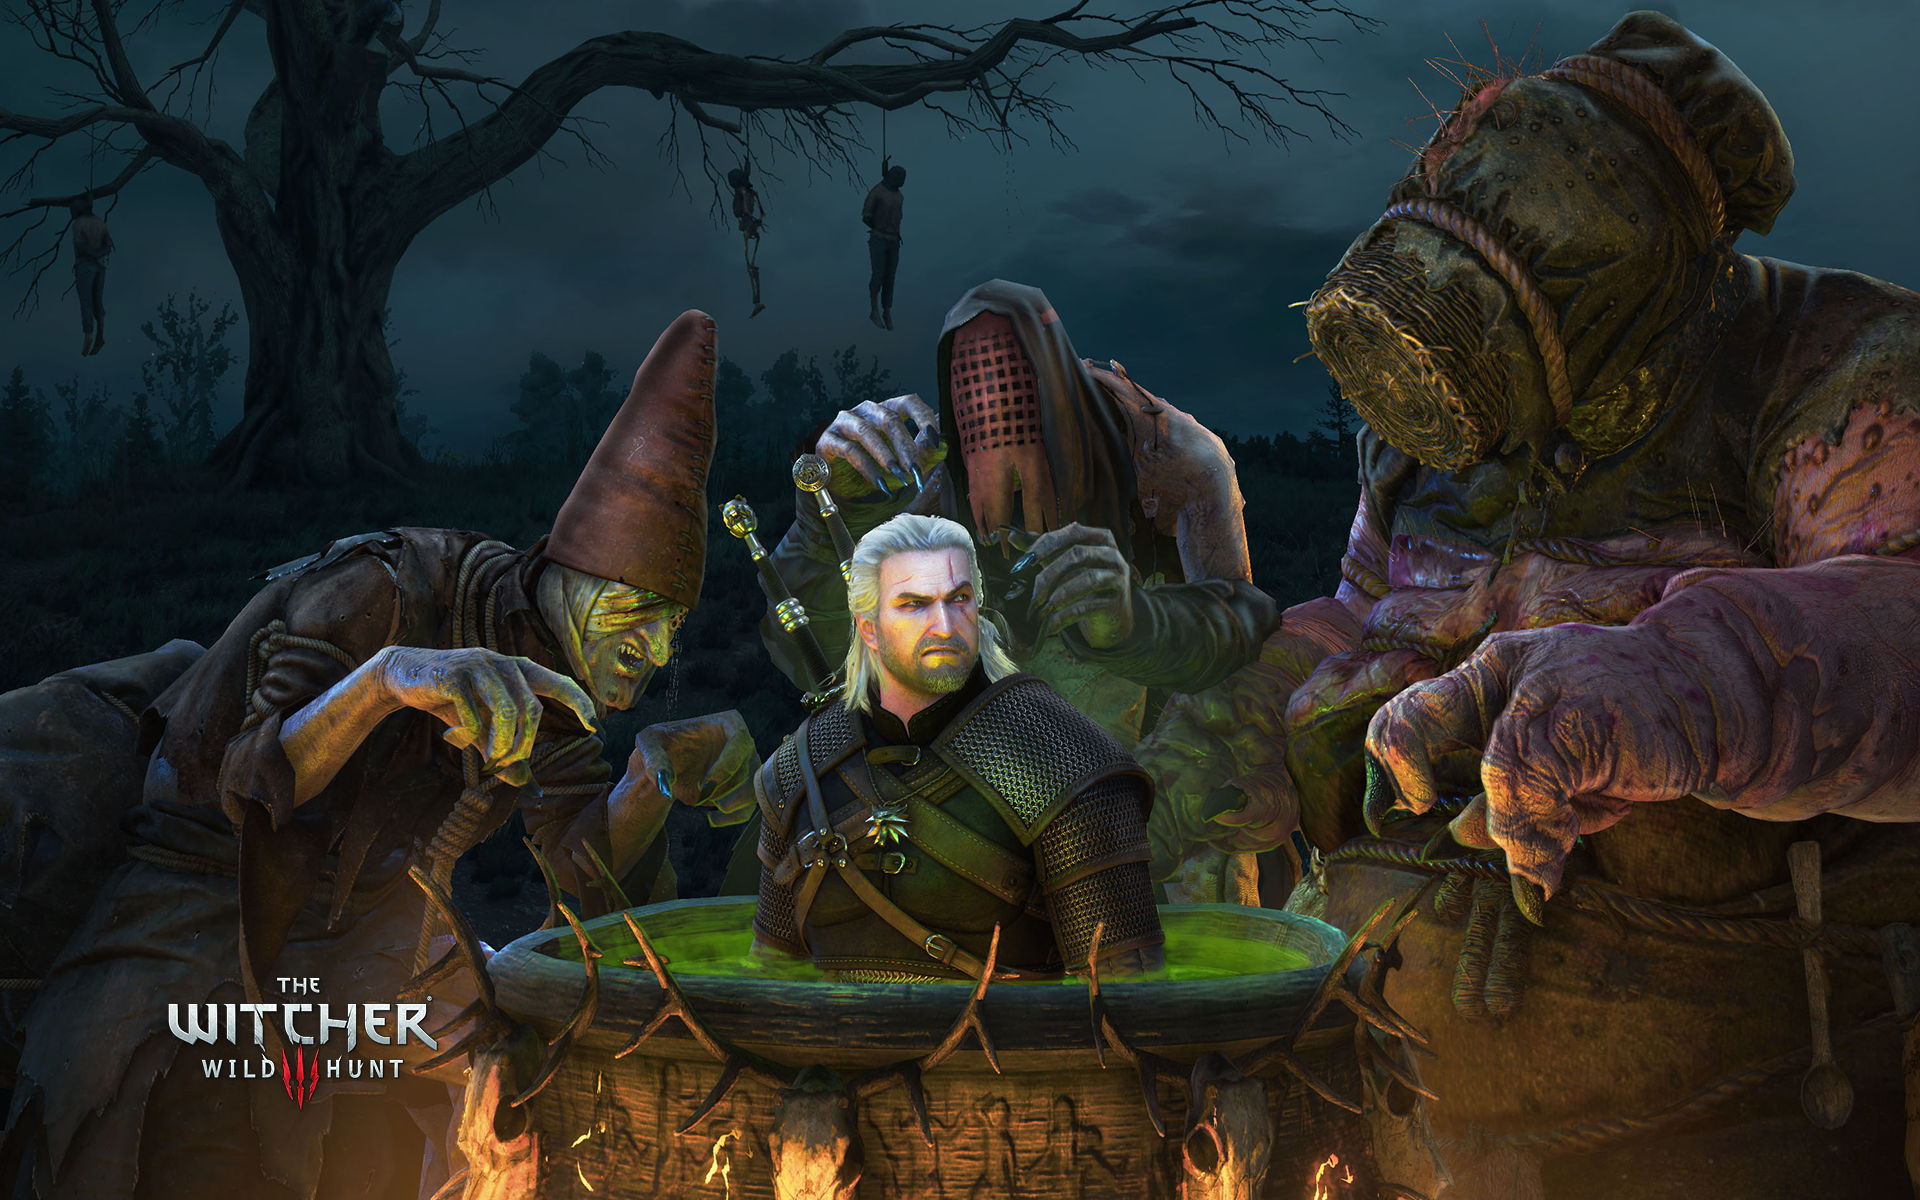 the witcher - photo #6